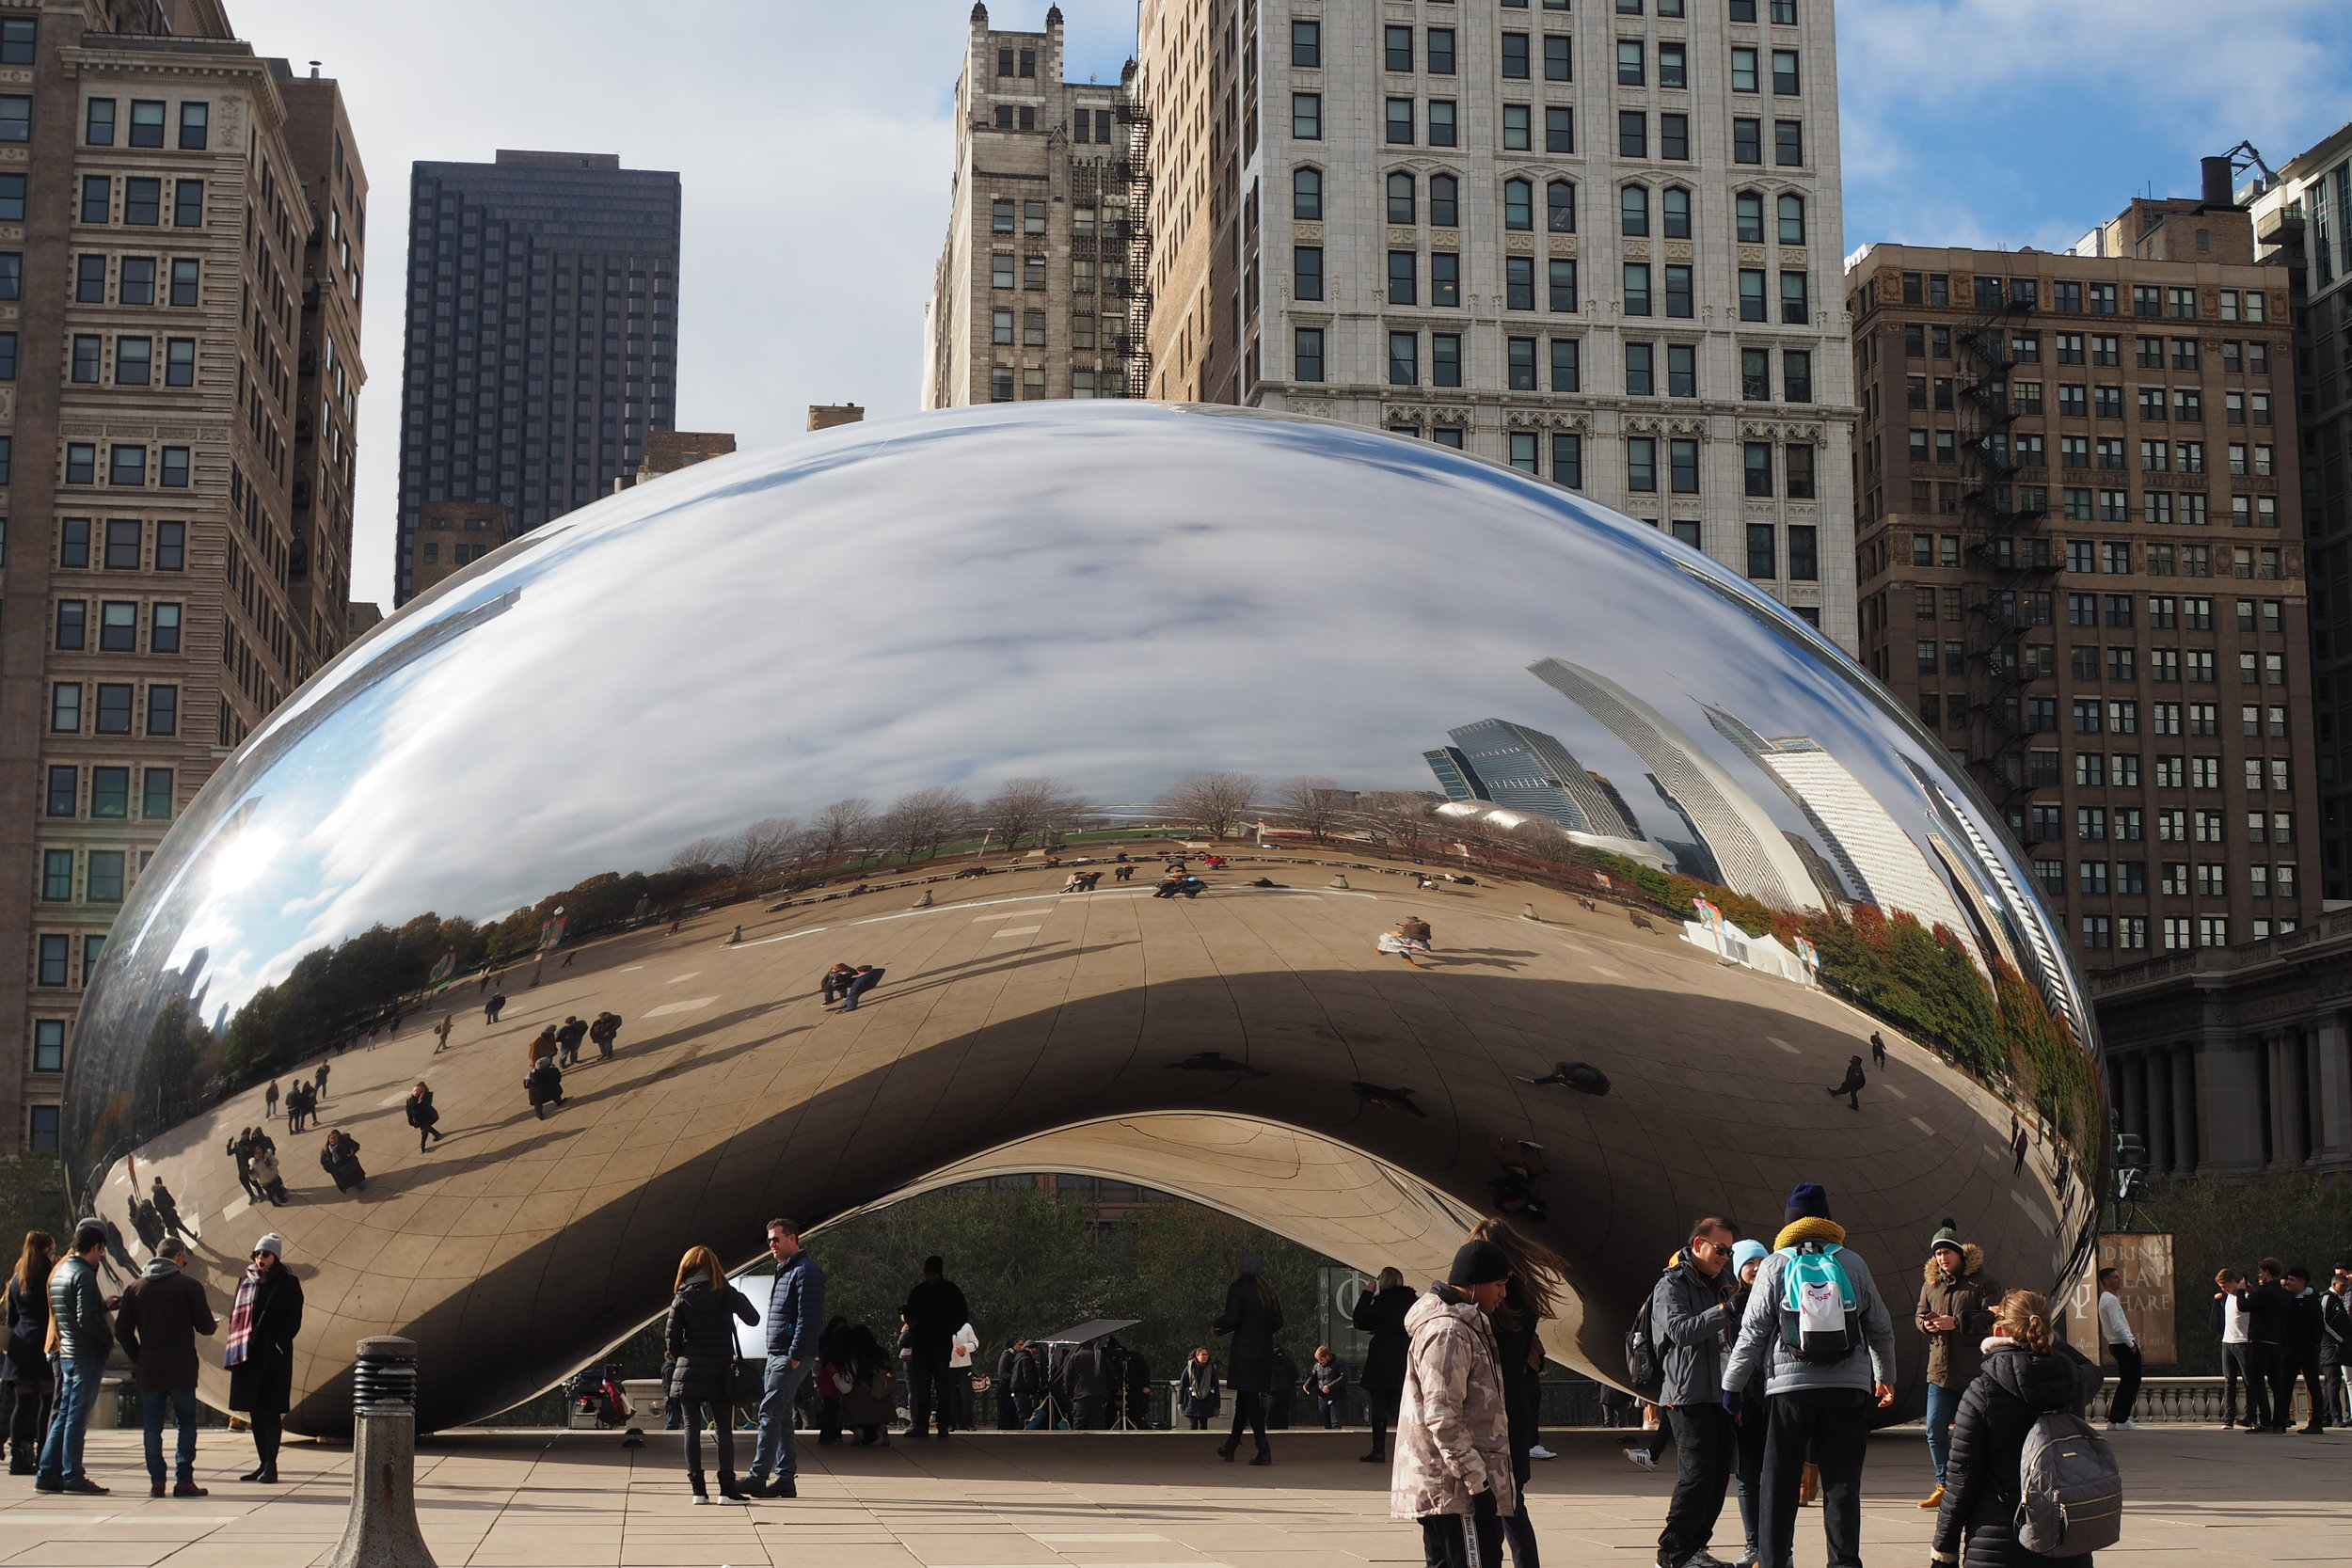 """'Cloud Gate' by Anish Kapoor. Fondly called """"The Bean"""" by locals, it has brought millions of visitors to Millennial Park to photograph this awe-inspiring piece"""